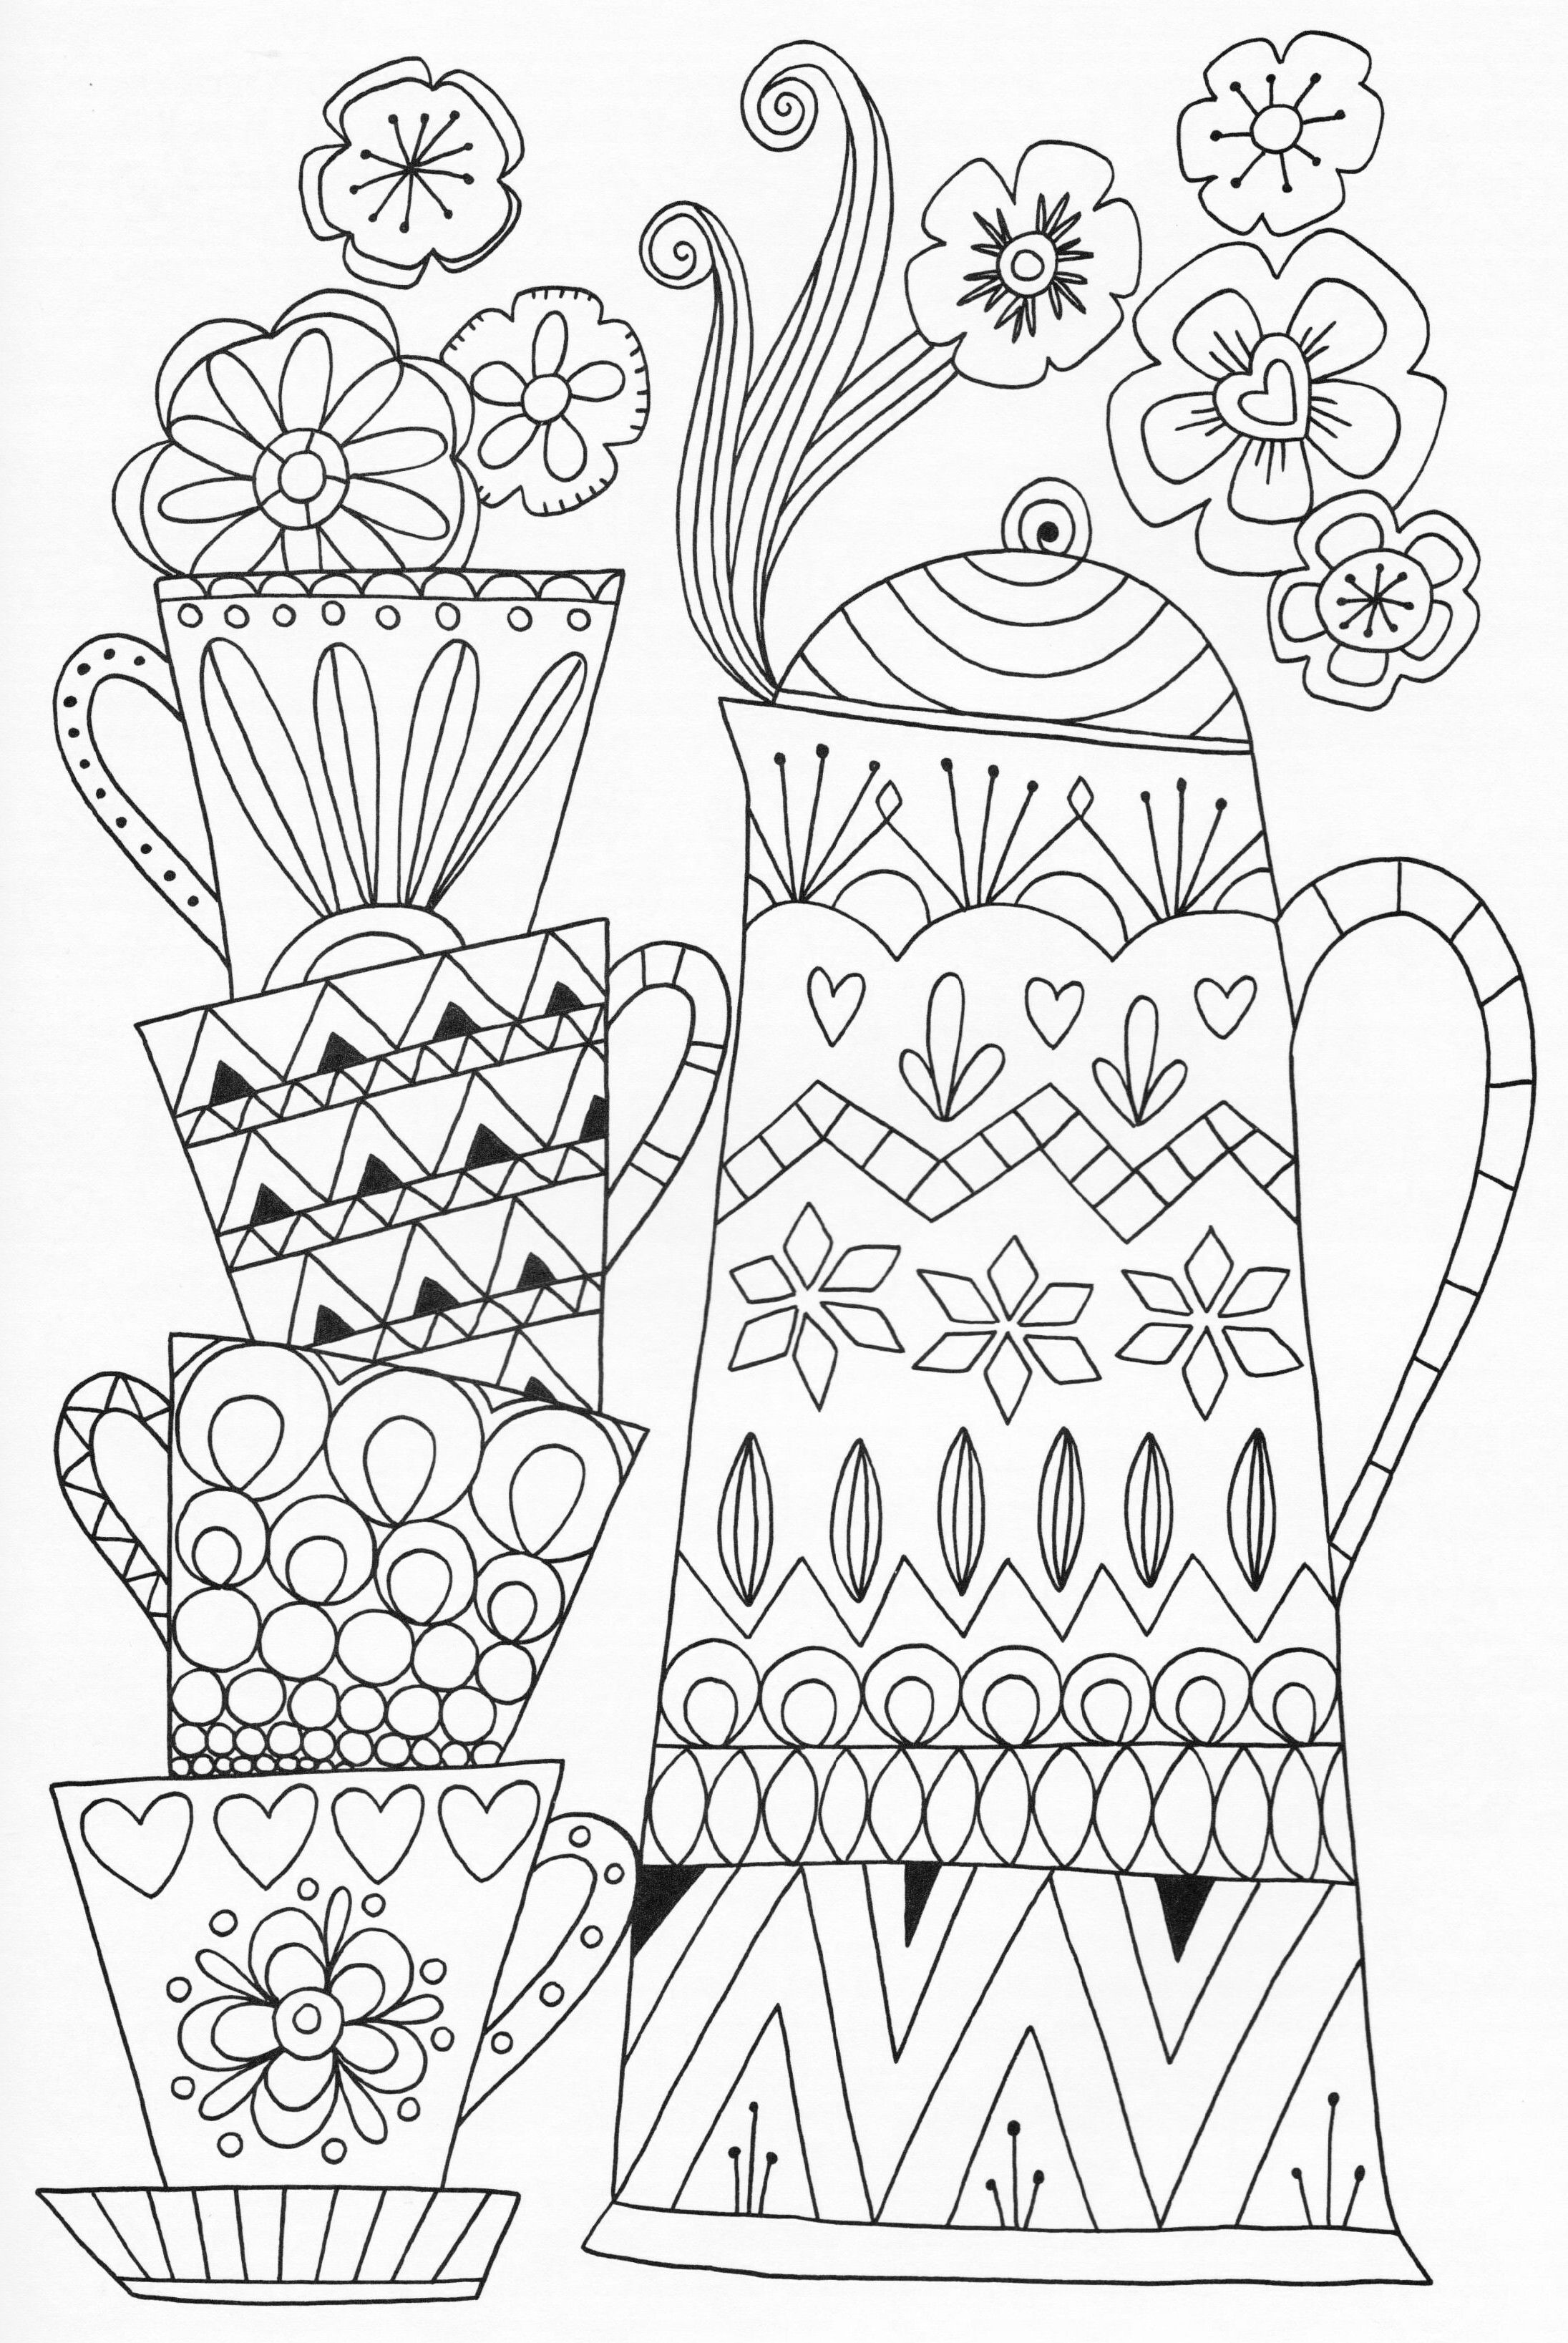 mary engelbreit coloring pages mary engelbreit coloring pages printable free coloring mary coloring pages engelbreit